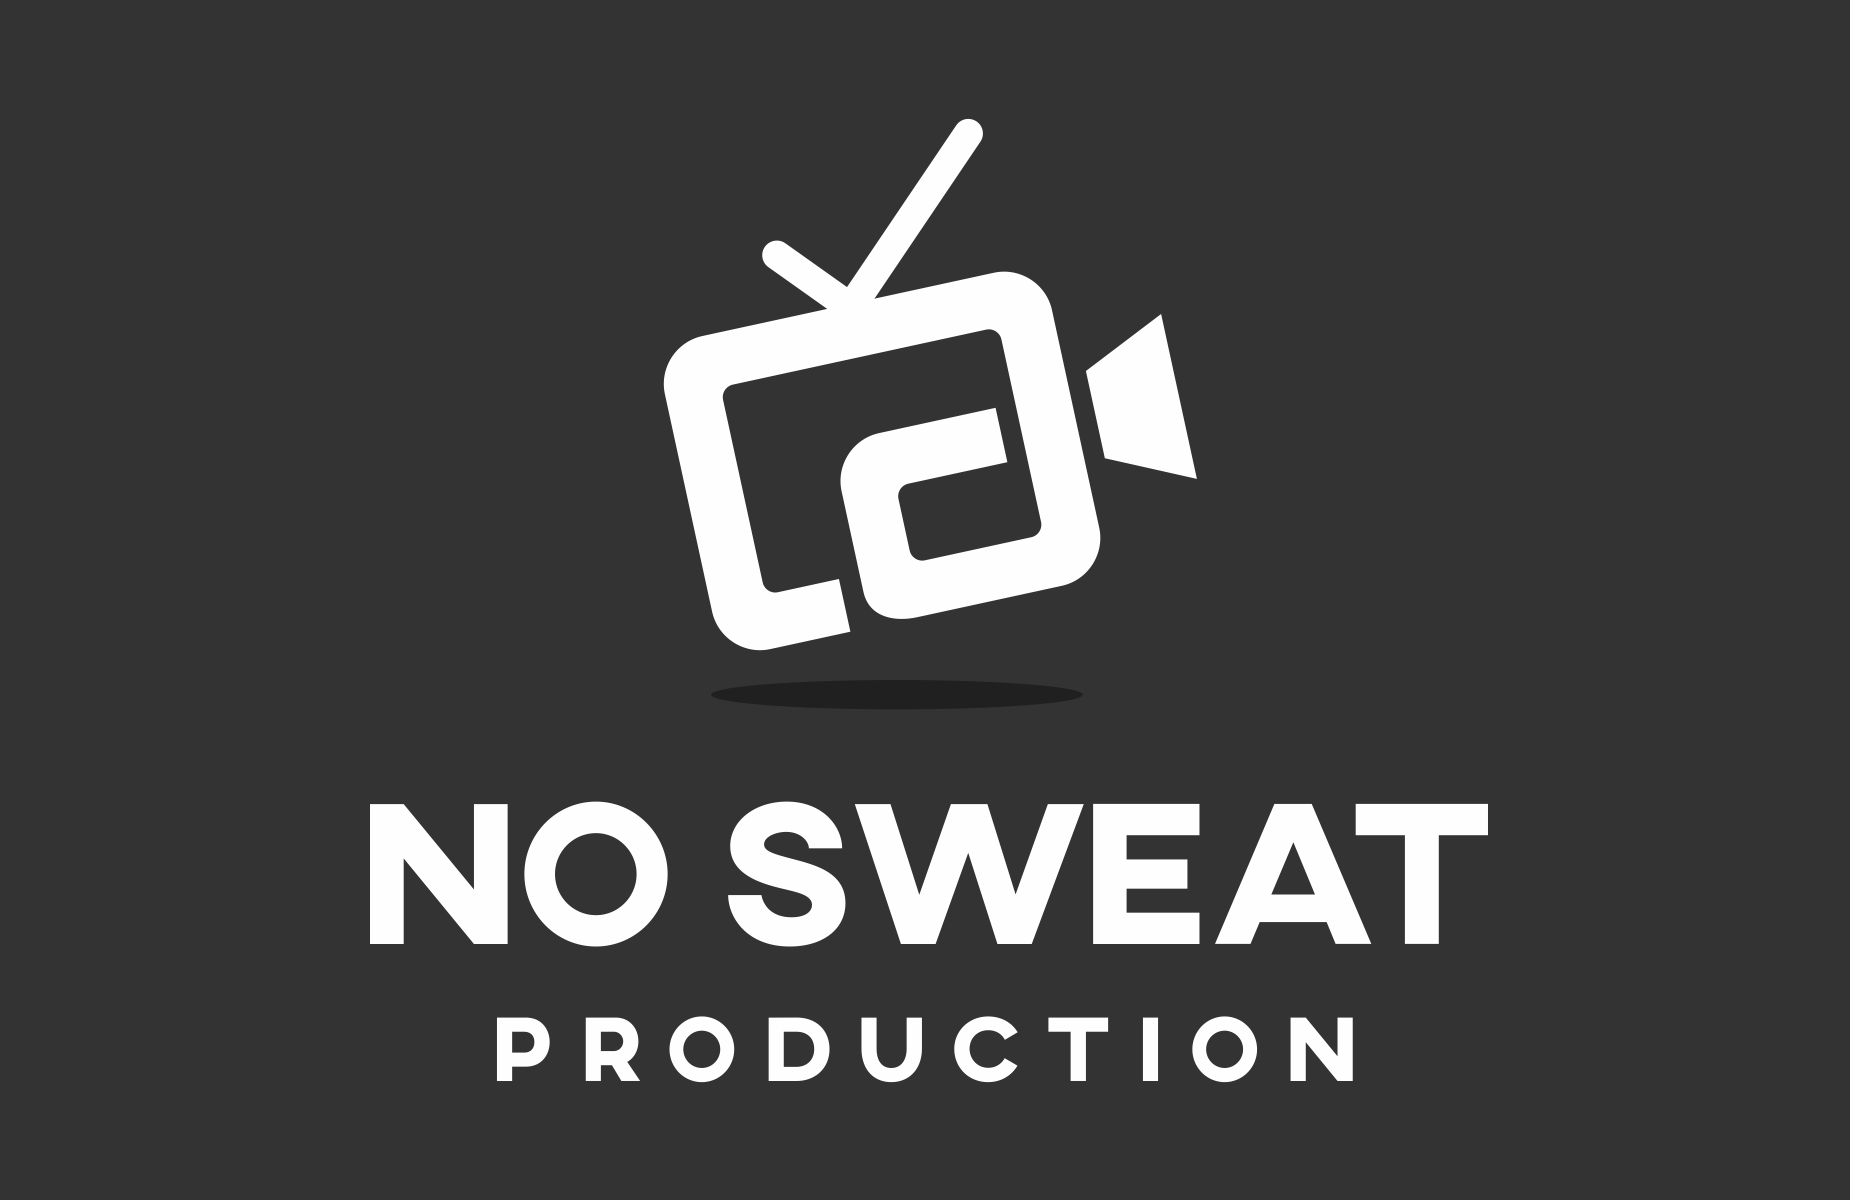 No Sweat Production